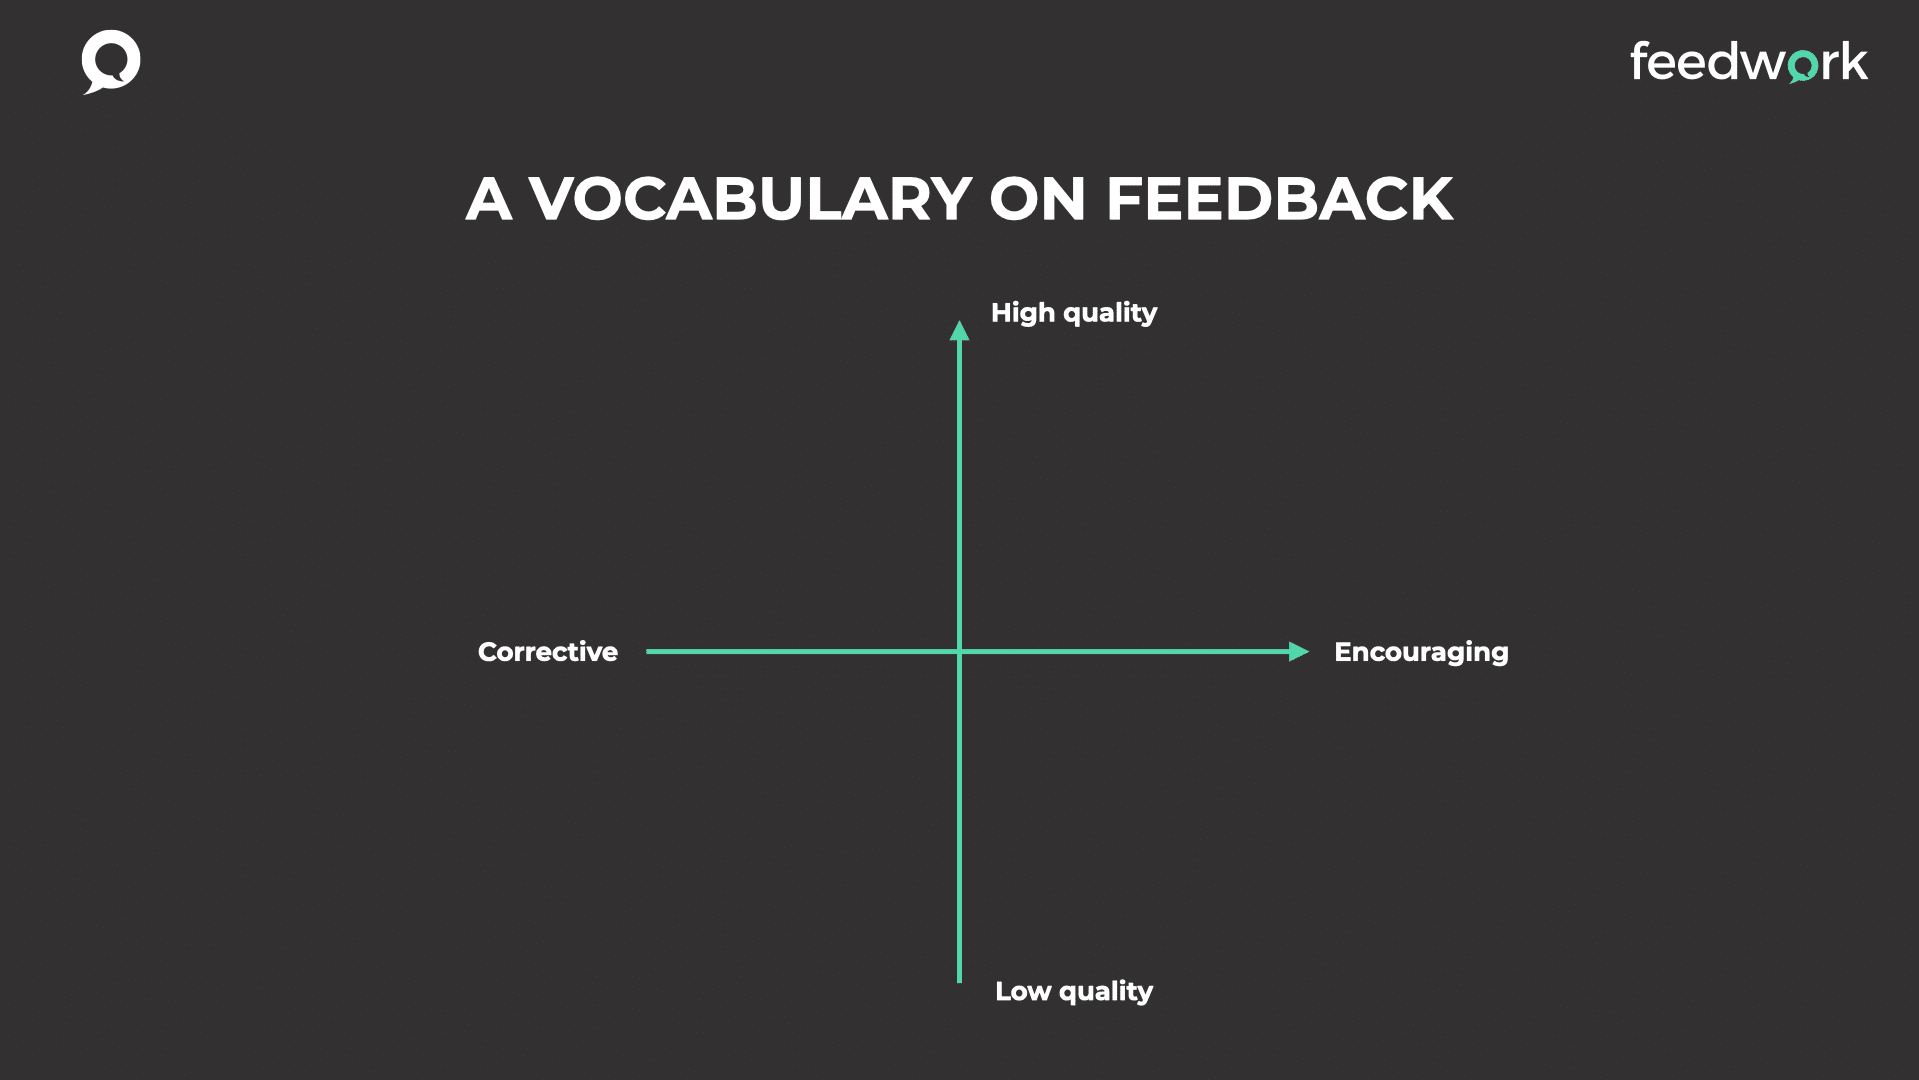 This grid can be used to expand the vocabulary on feedback instead of the words positive and negative